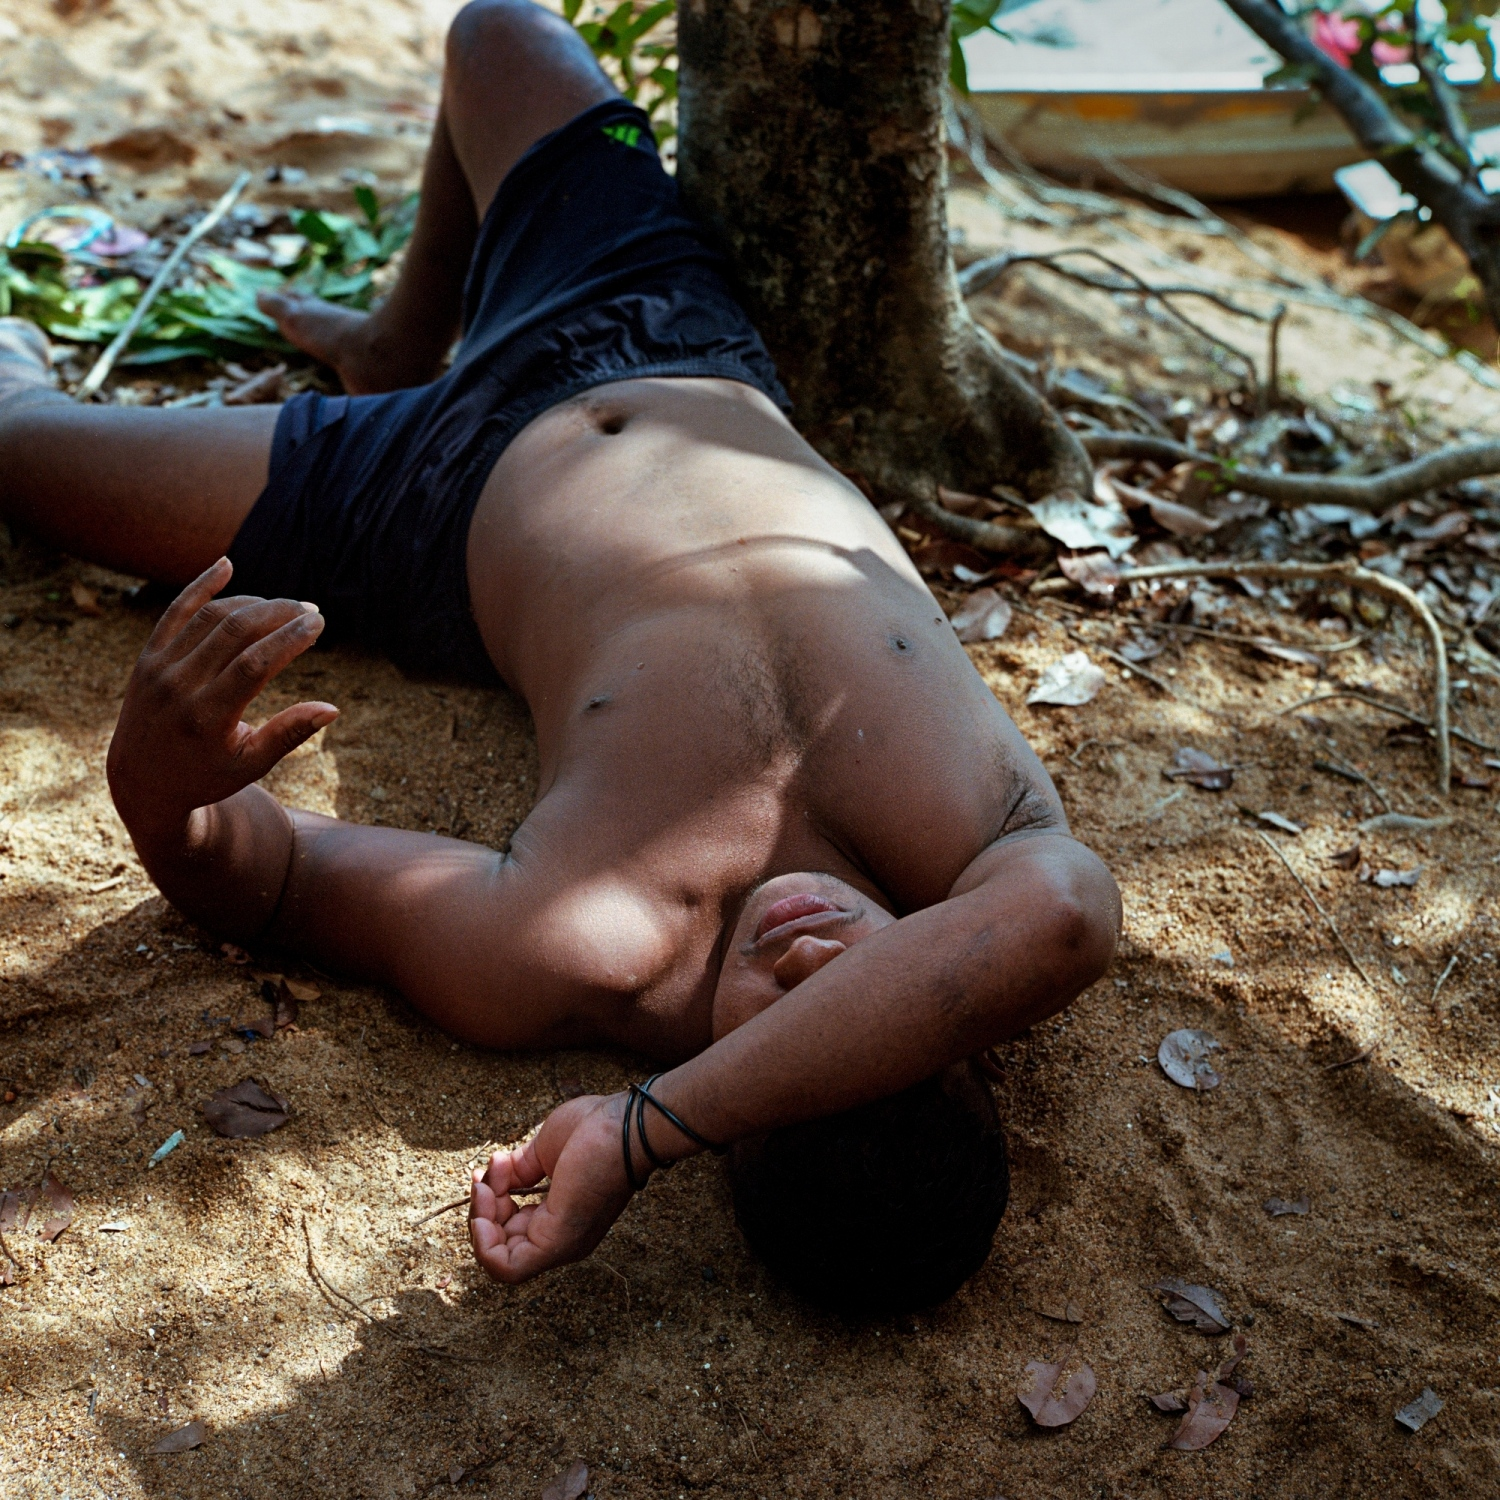 2016. Joseil Jacinto Pierra Juruna, from the Juruna village of Miratu, rests during a Sunday picnic on the banks of the Volta Grange of the Xingu River.  /Aaron Vincent Elkaim